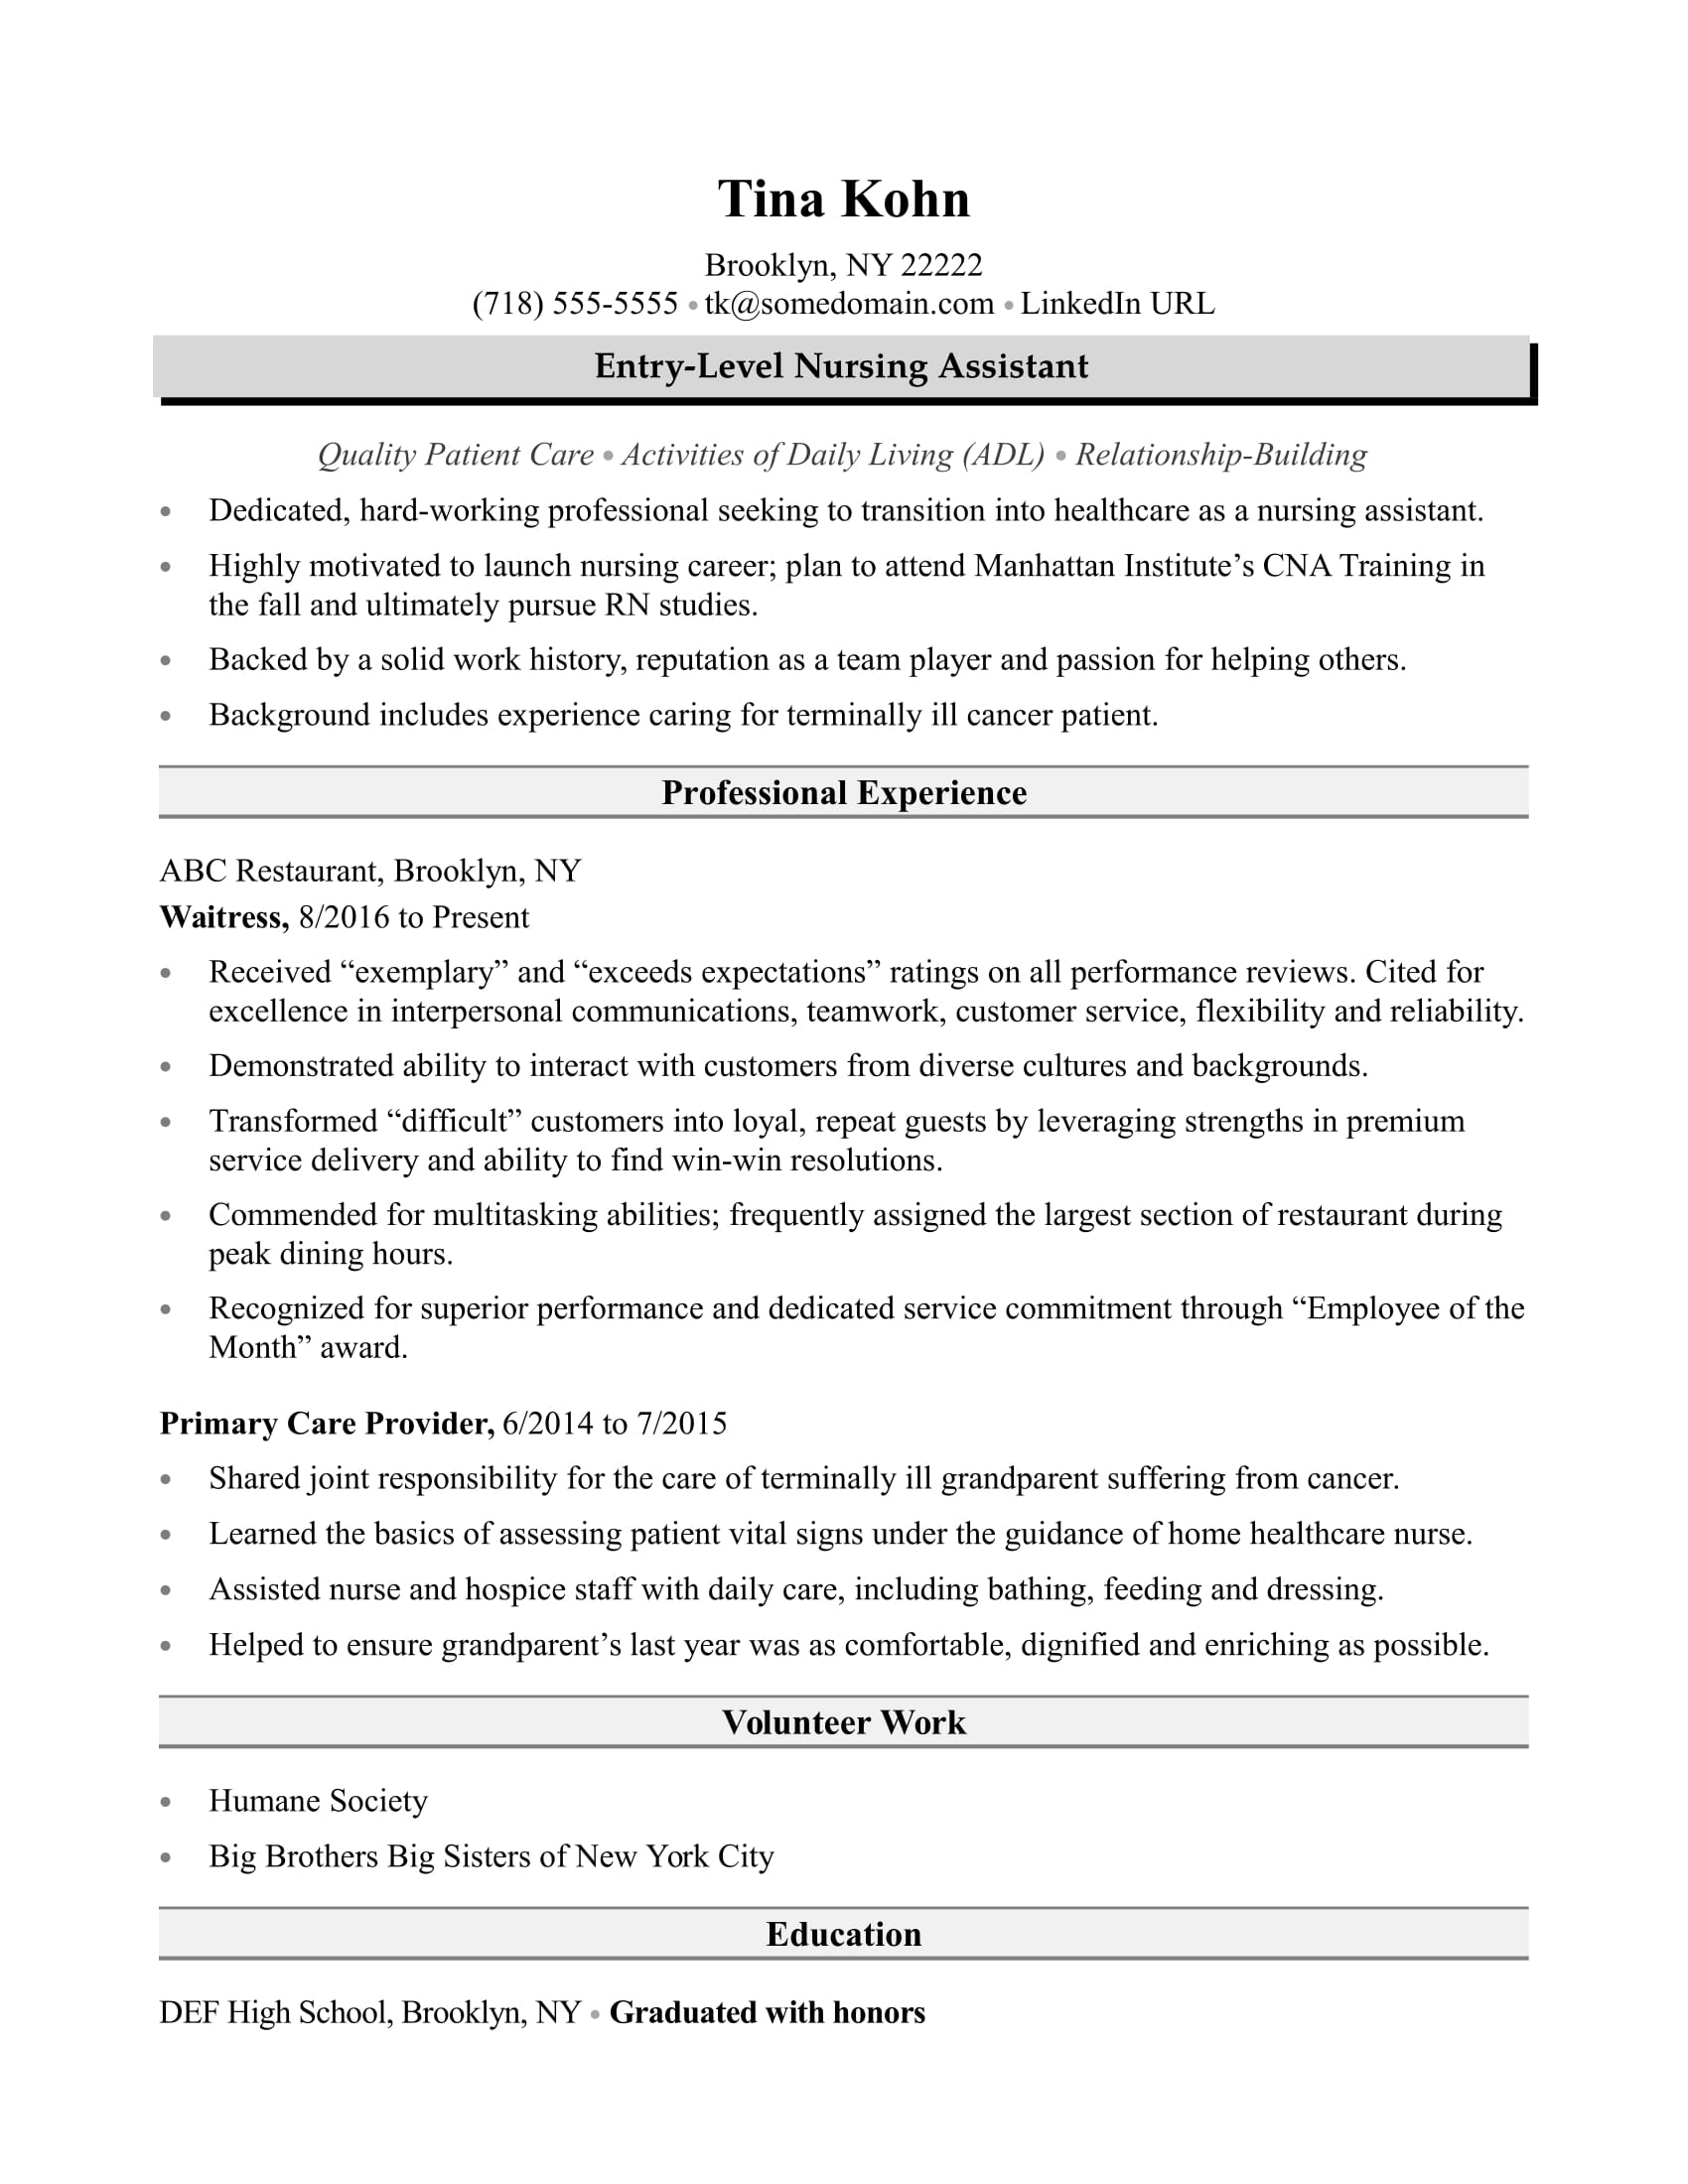 nursing assistant resume sample monster entry level skills free accounting samples your Resume Entry Level Nursing Resume Skills